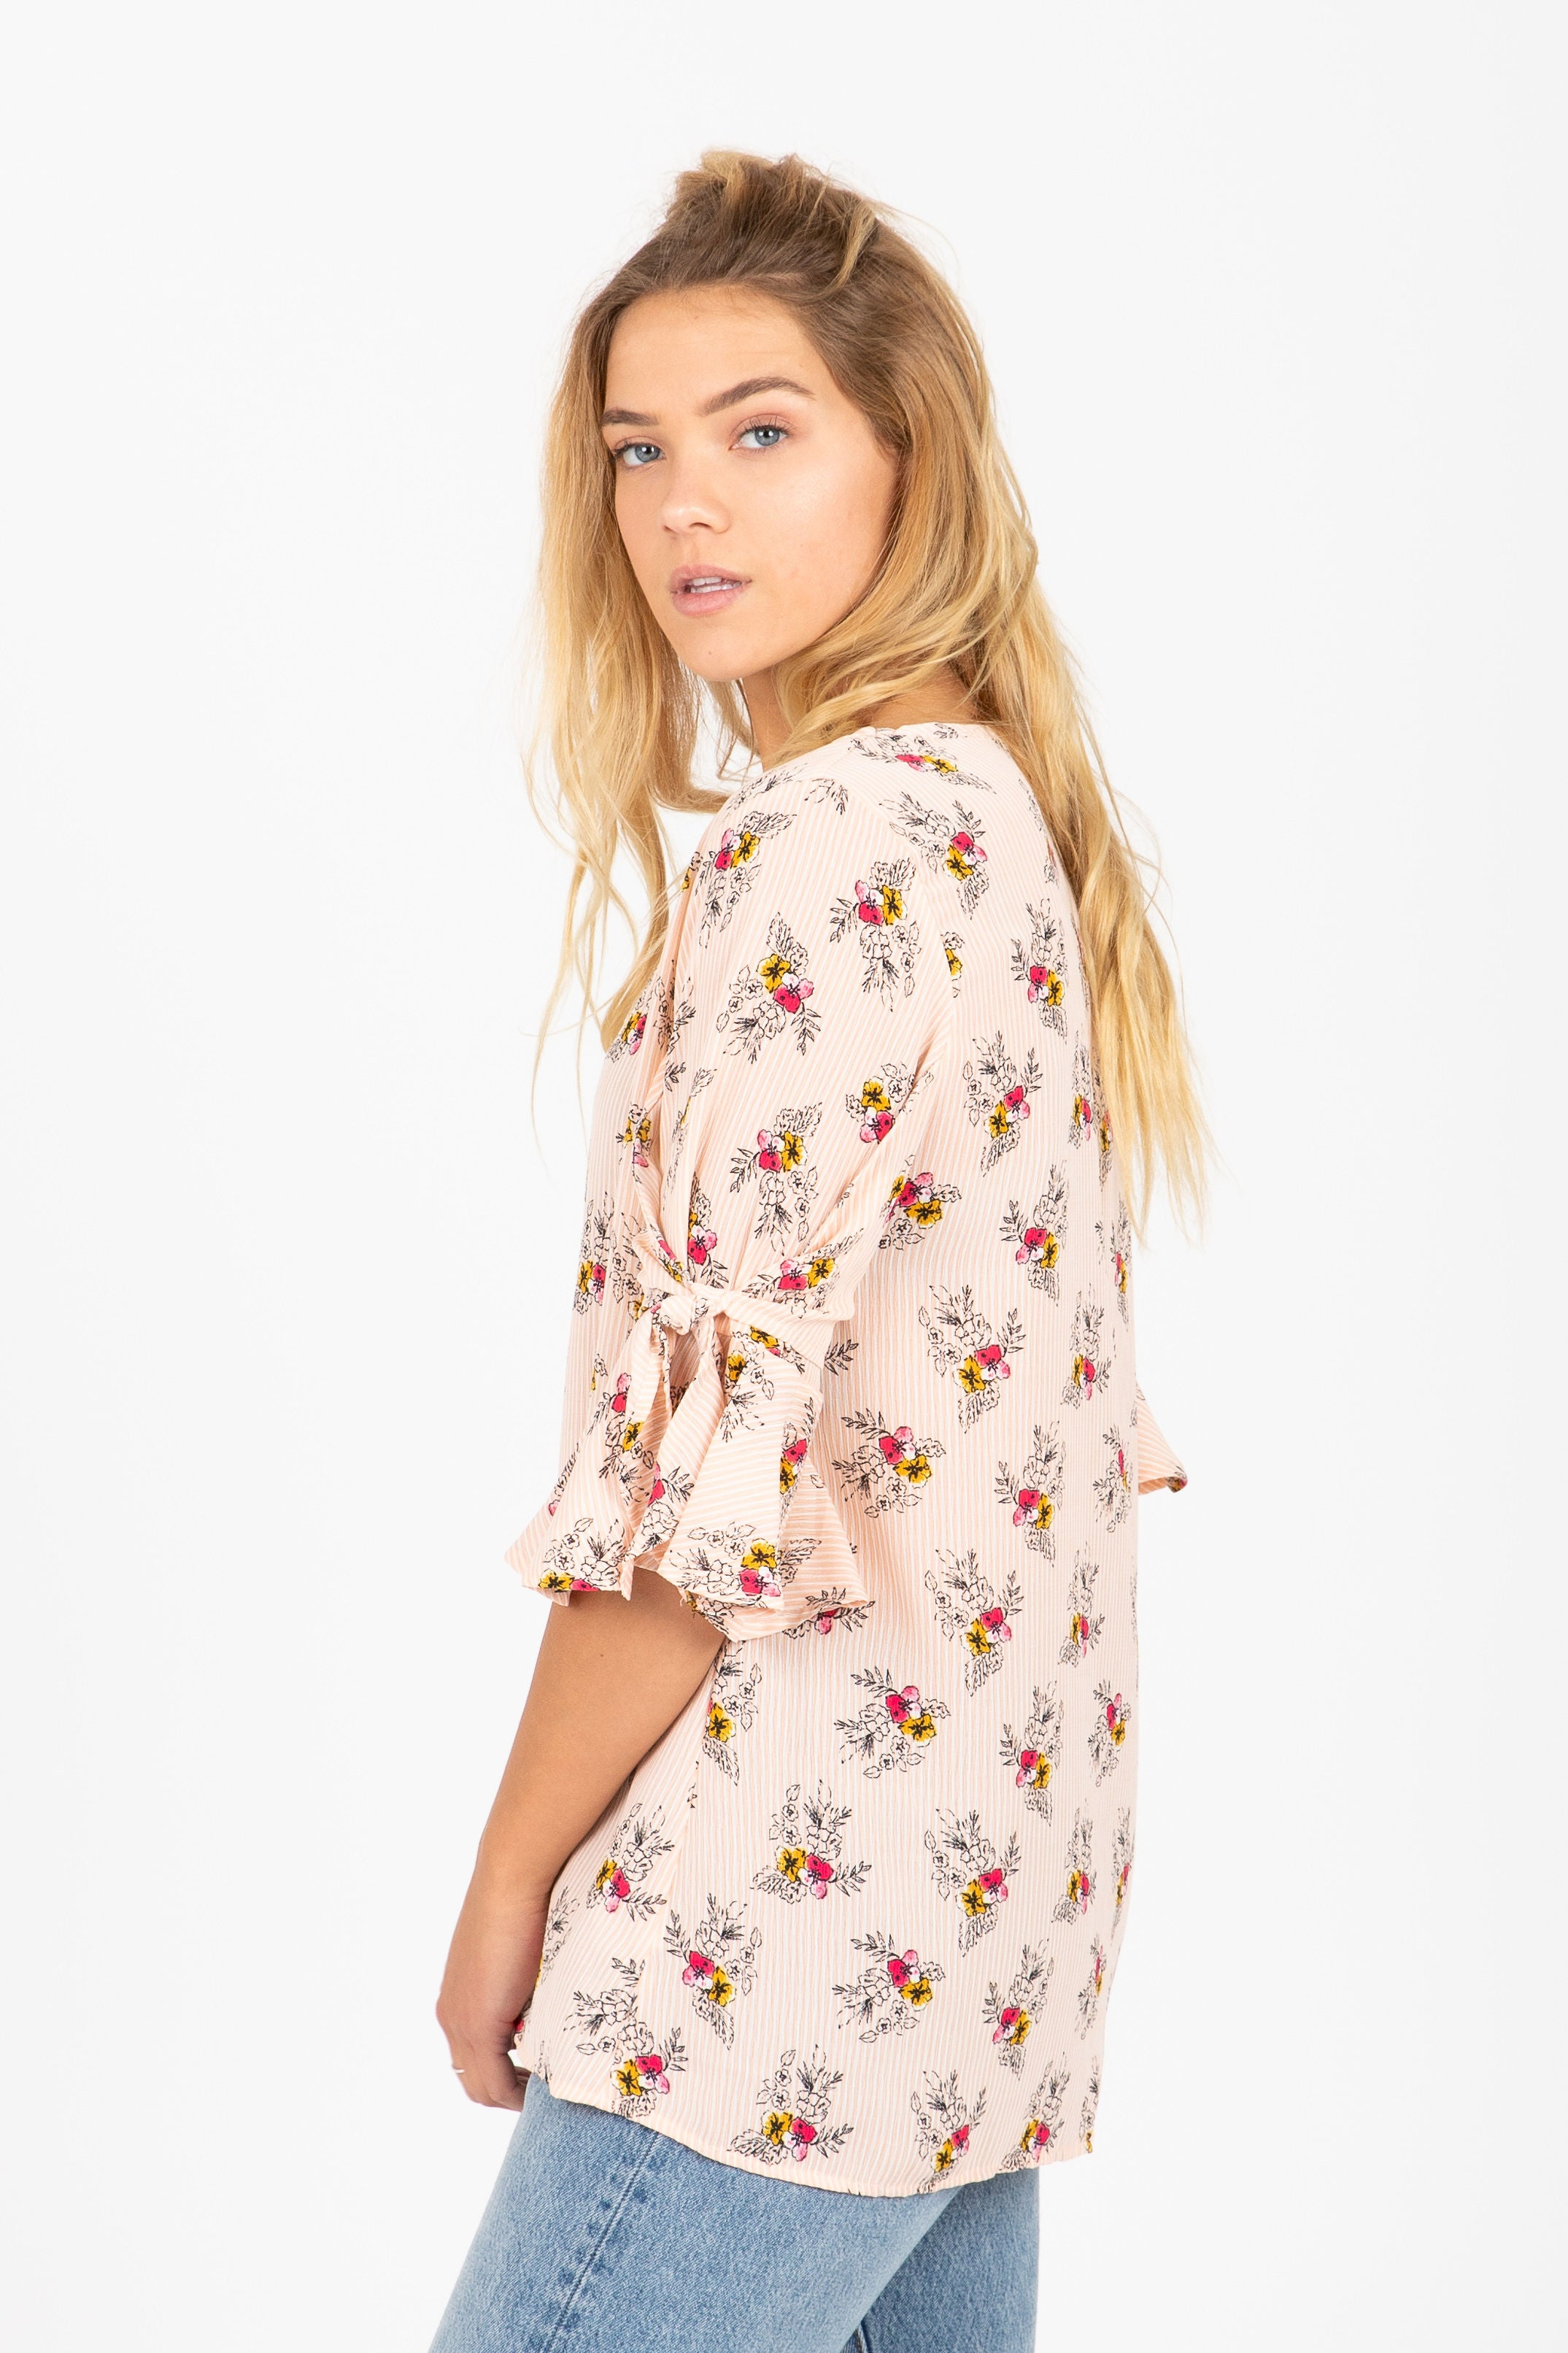 The Snap Floral Ruffle Sleeve Blouse in Blush